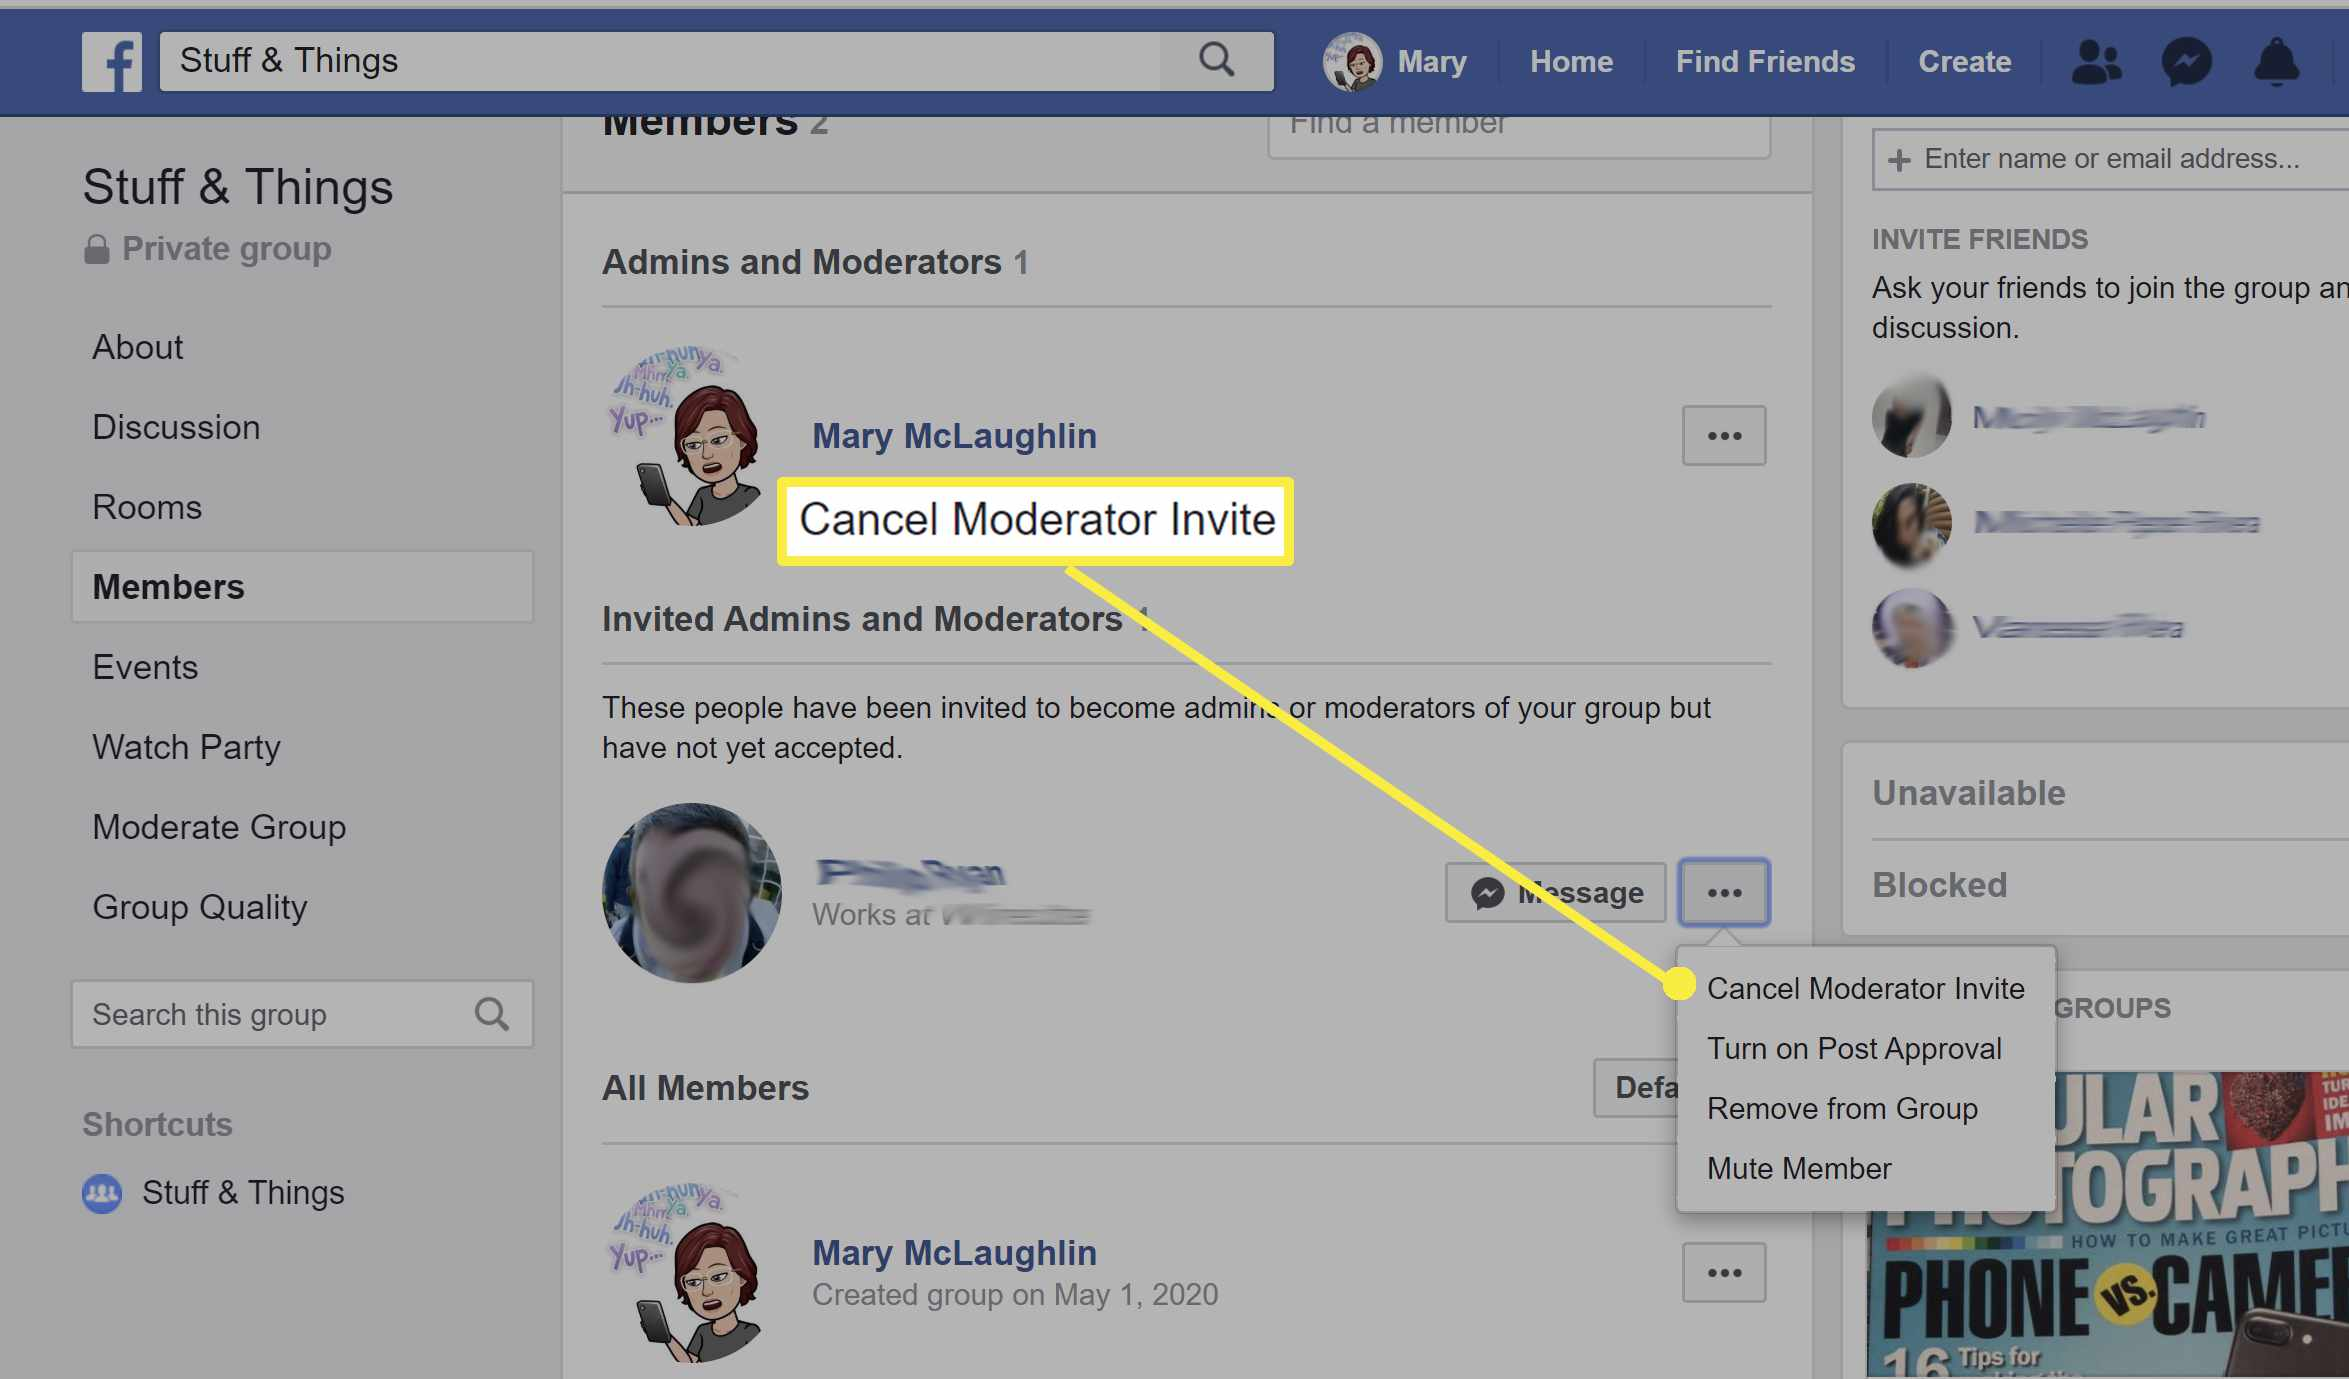 Canceling moderator invite on a Facebook page.